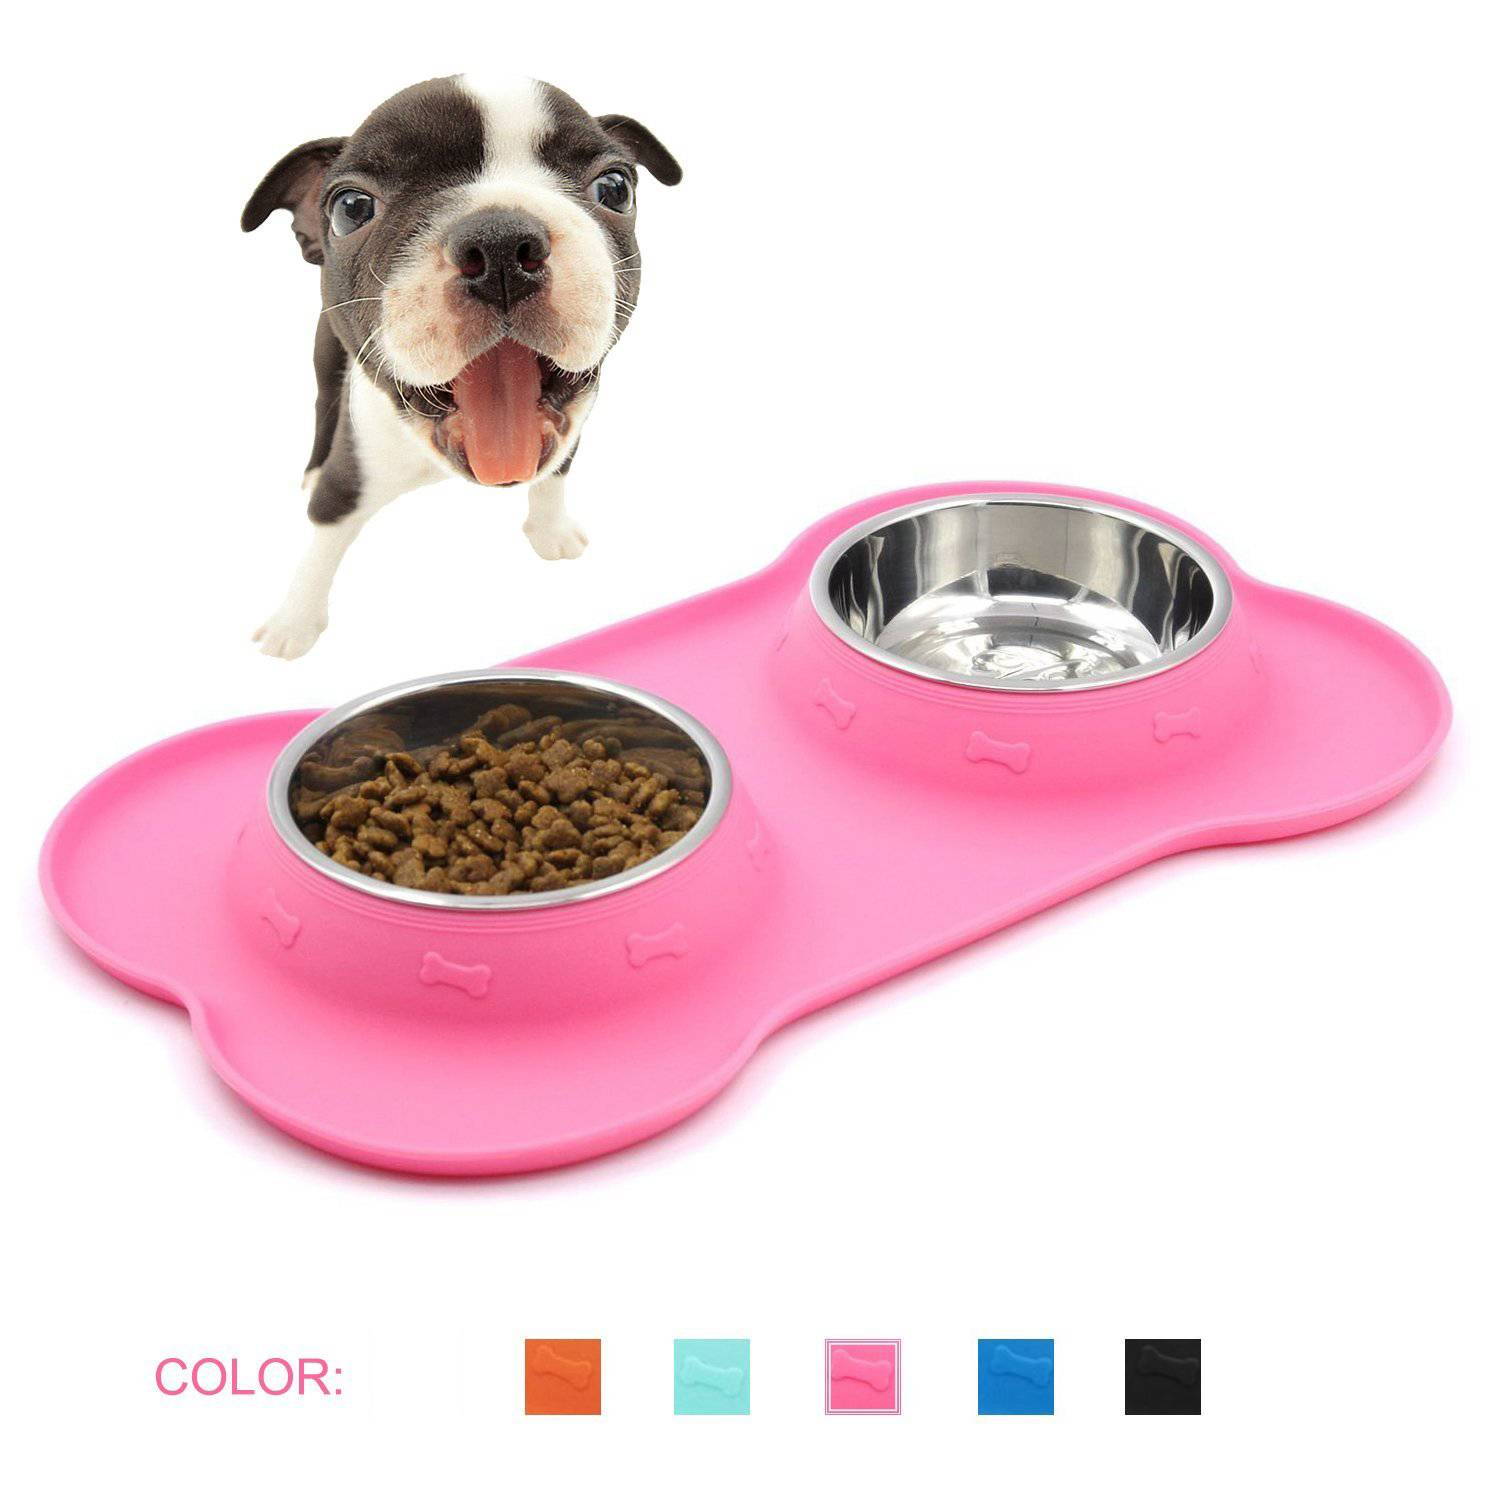 Small Dogs or Cats Stainless Steel Water Food Bowls in Non-Skid Silicone Mat